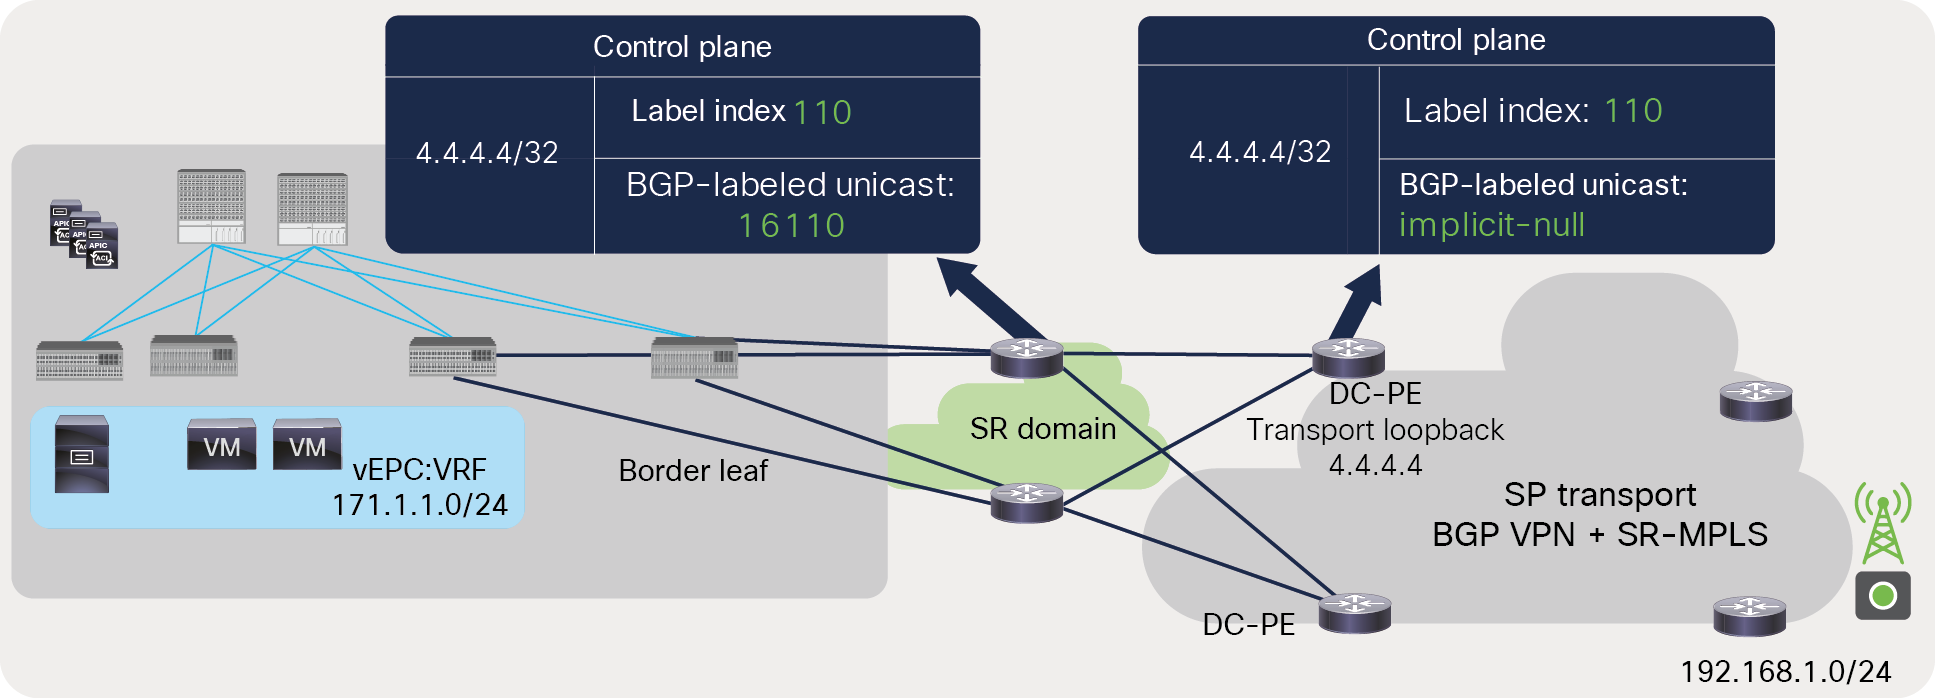 BGP-LU label advertisement from DC-PE to ACI border leaf across an SR-MPLS network